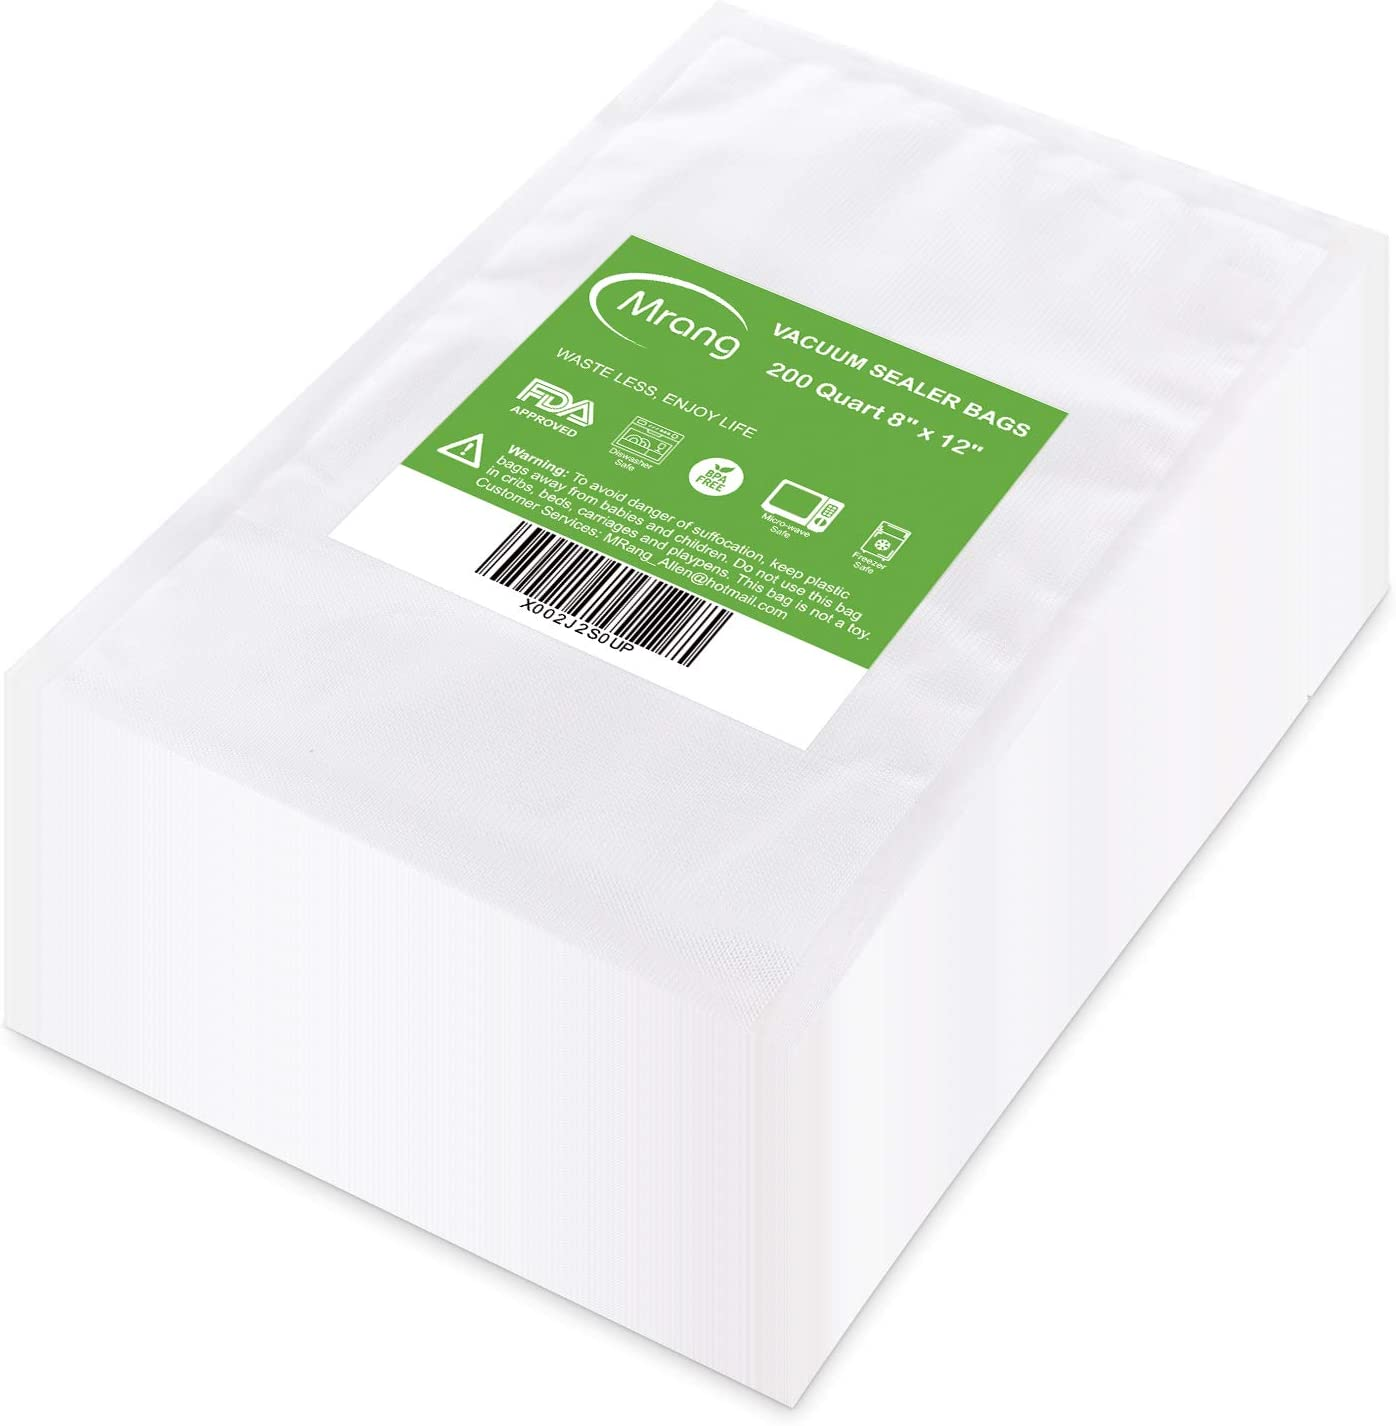 Vacuum Sealer Bags 200 Quart 8 x 12 Inch for Food Saver, Seal a Meal, Commercial Grade, BPA Free, Heavy Duty, Great for vac storage, Meal Prep or Sous Vide